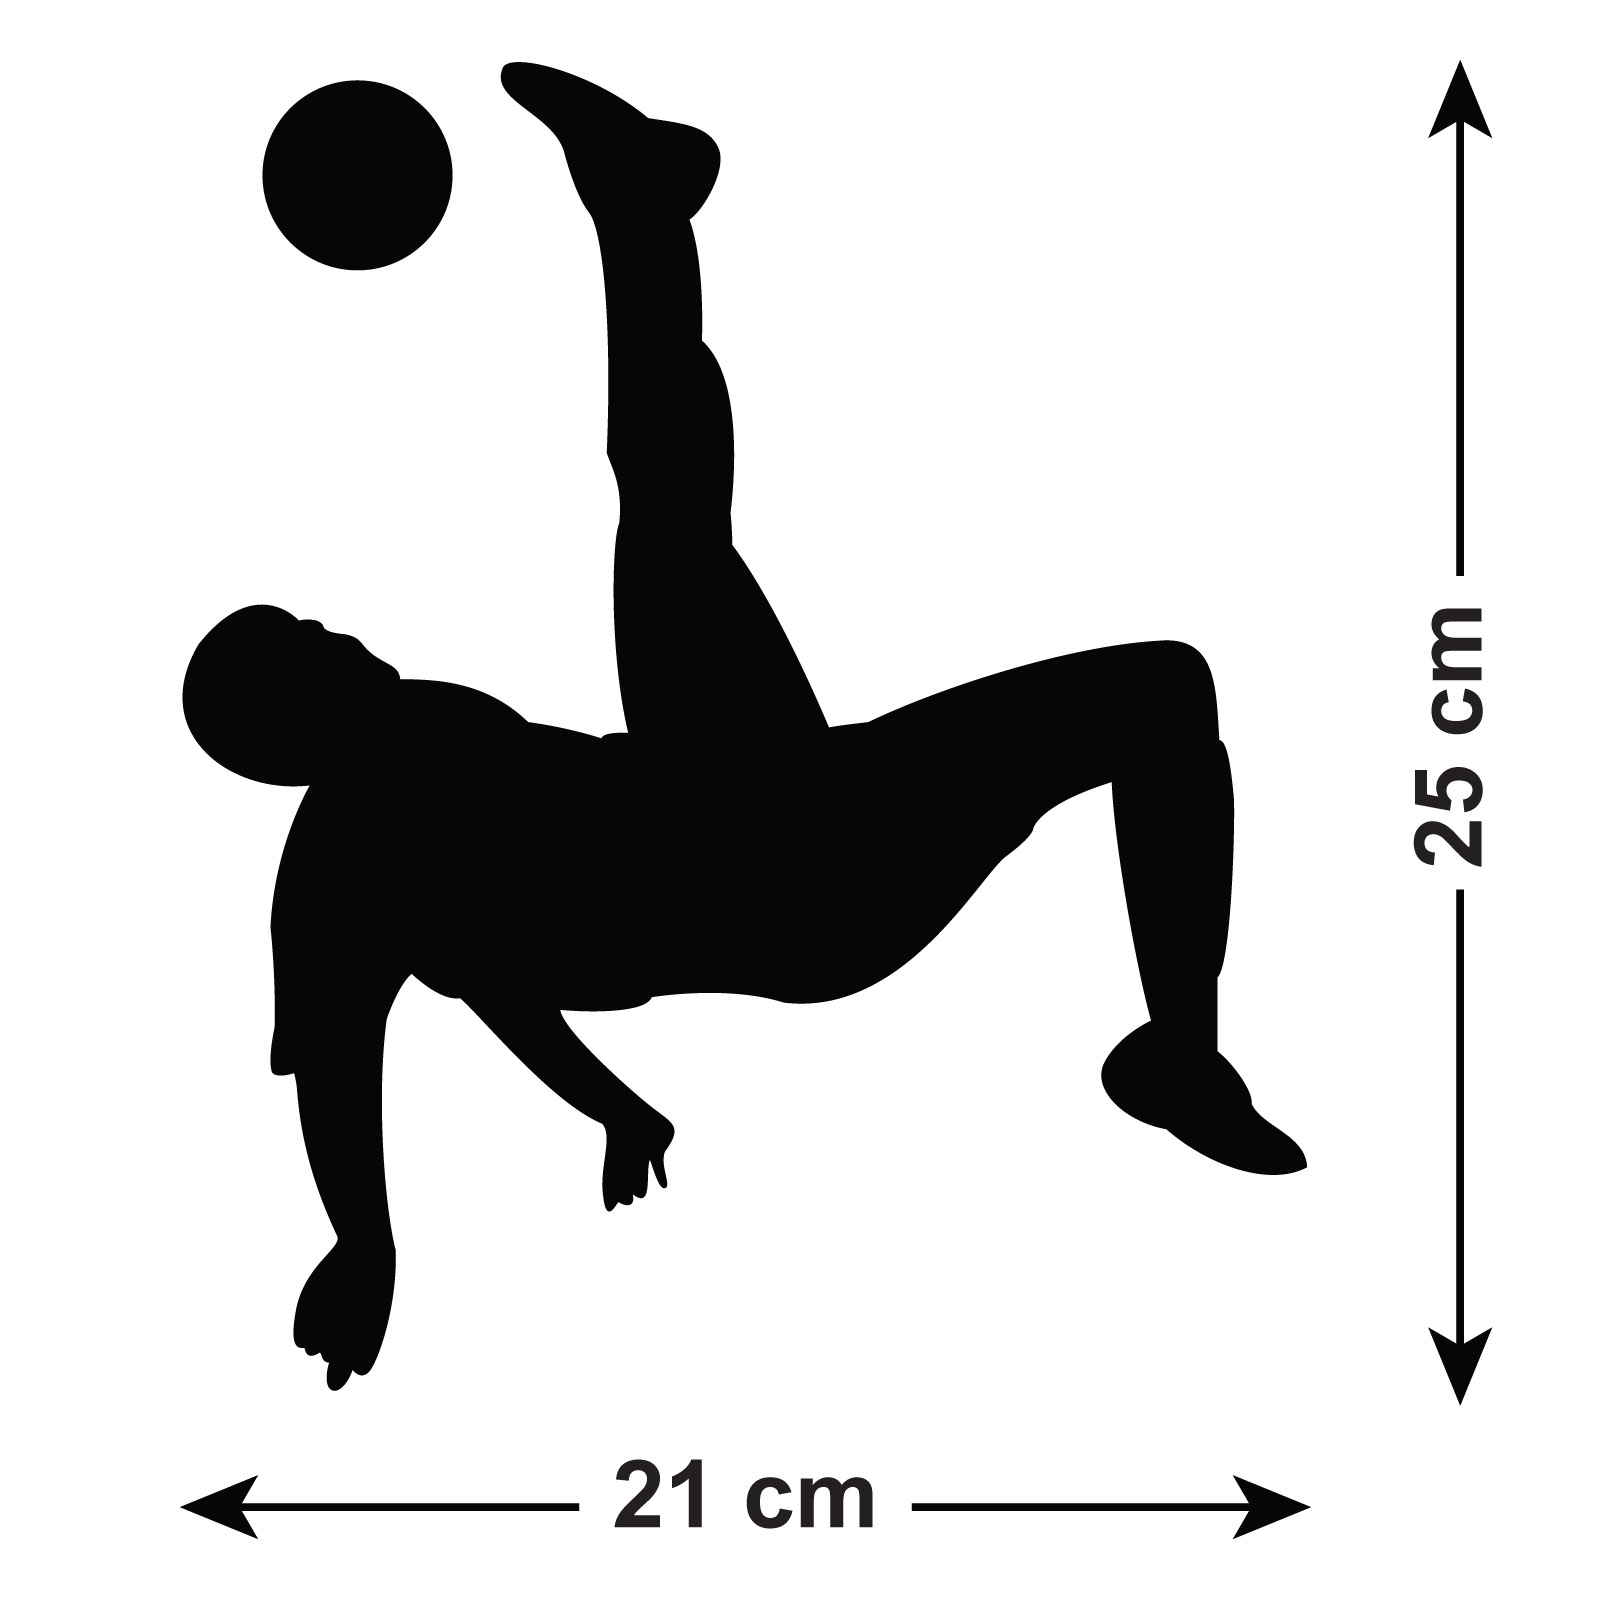 Silhouette boys soccer bicycle kick clipart.